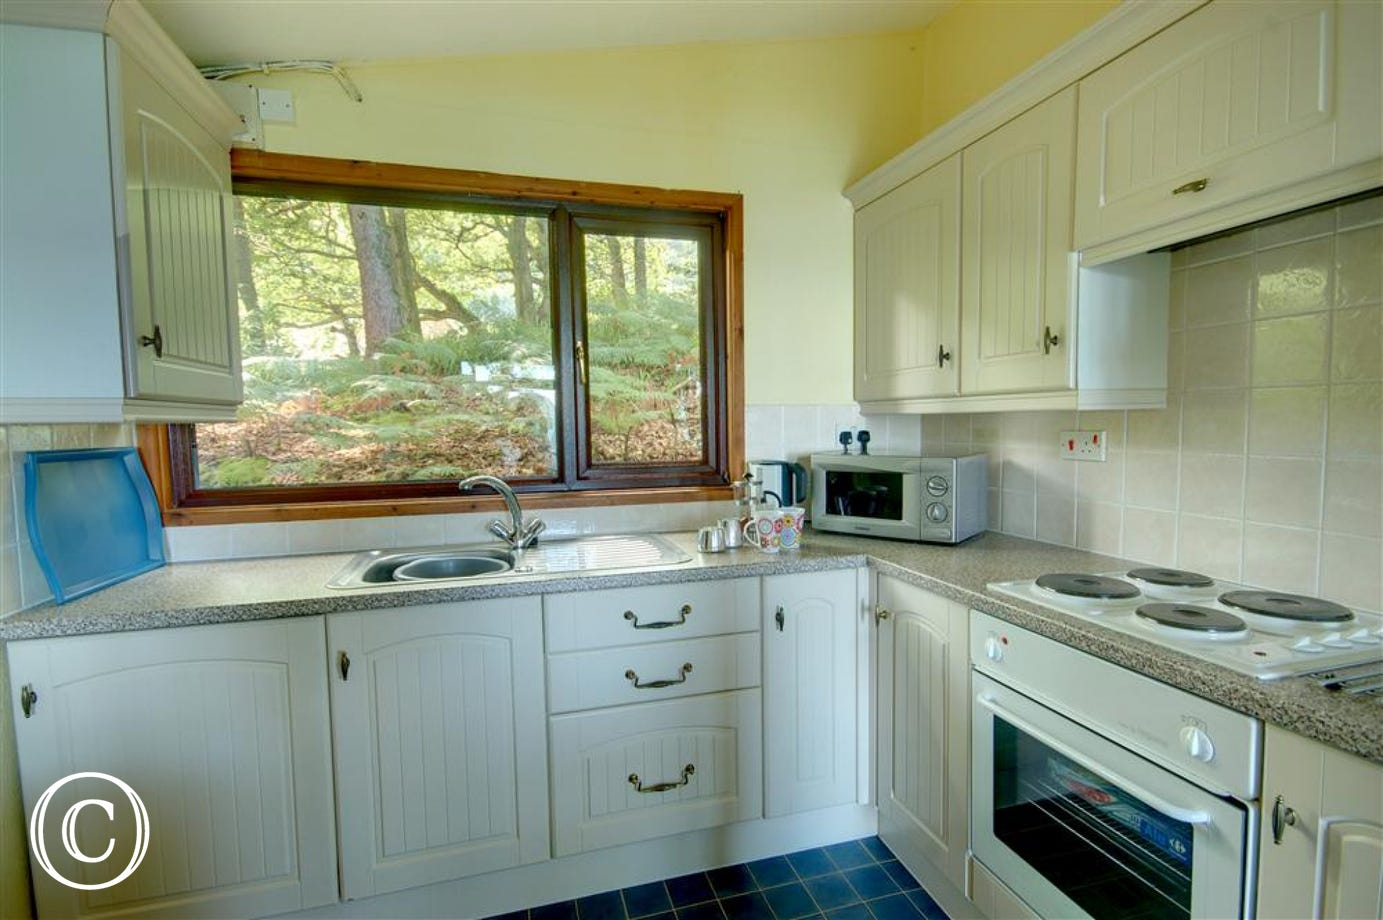 Fully equipped kitchen with picture window looking out to the woods